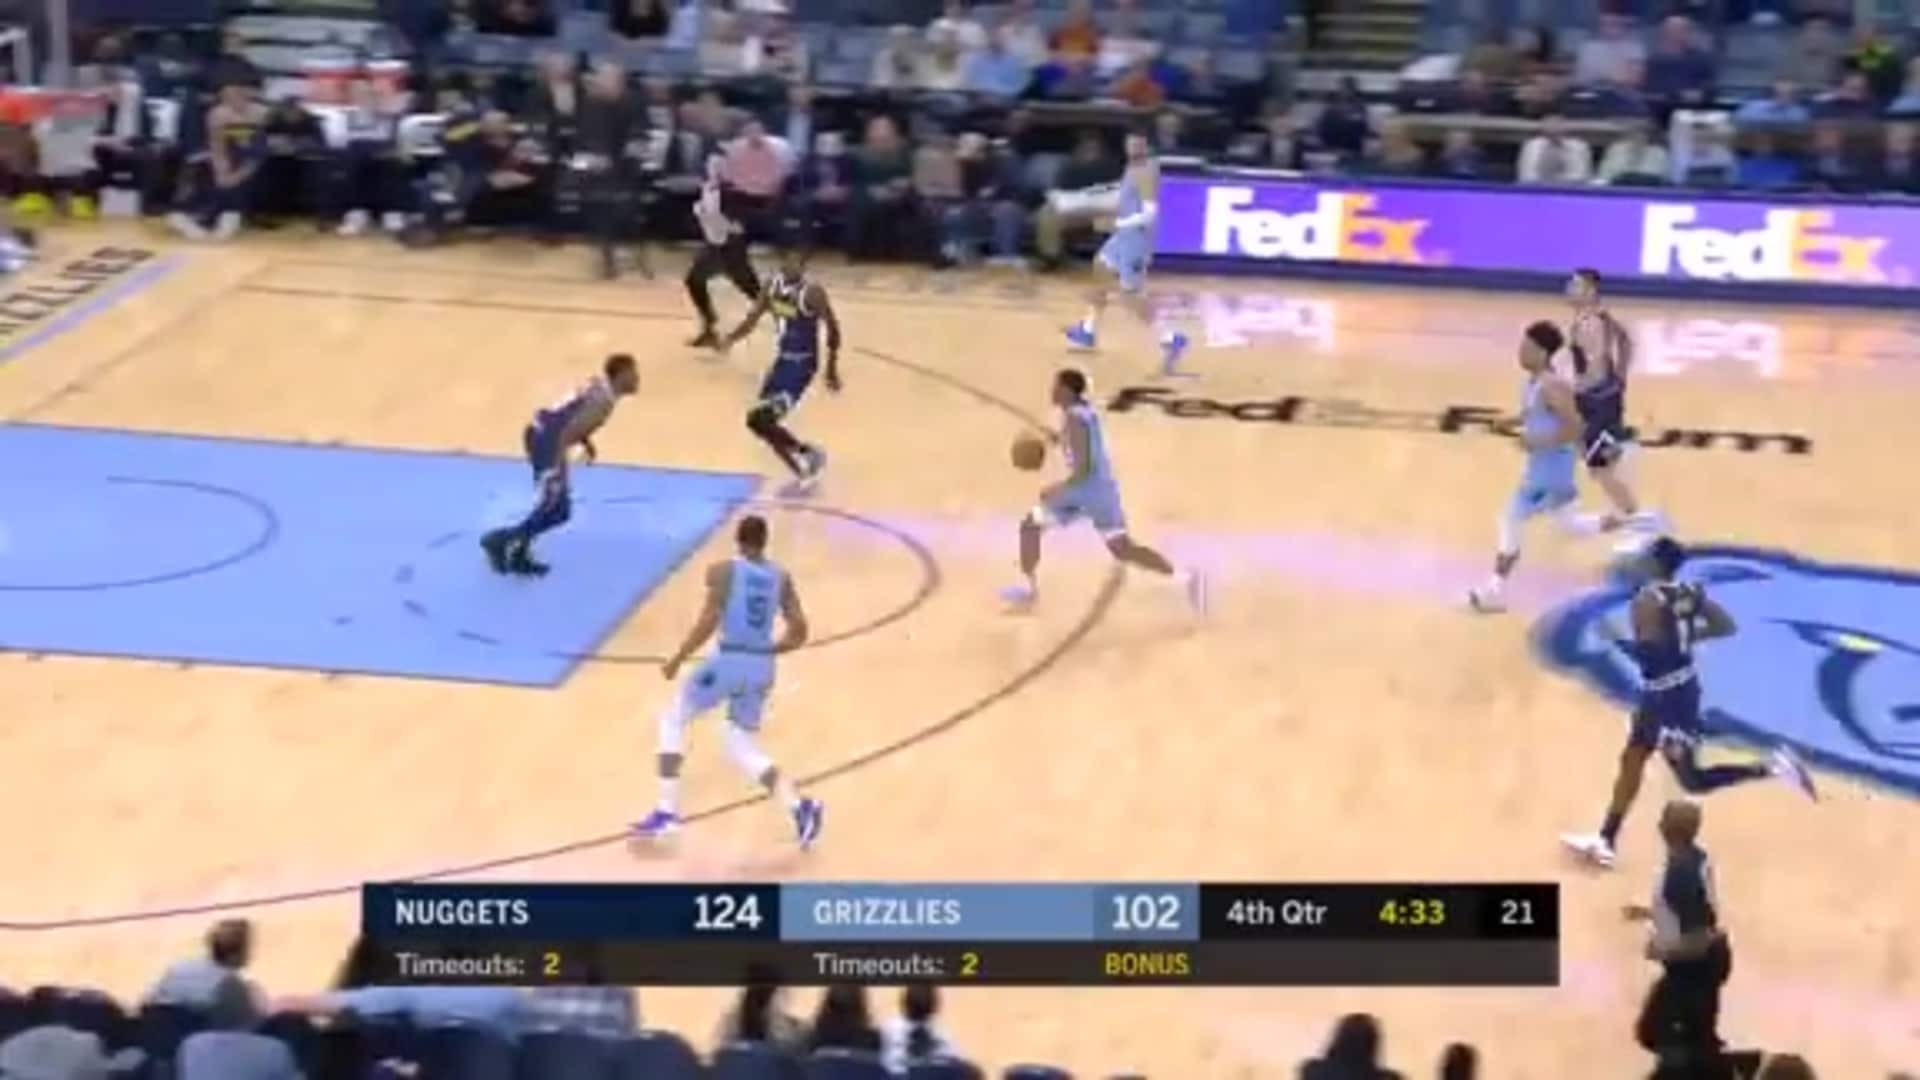 Grizzlies vs. Nuggets highlights 11.17.19